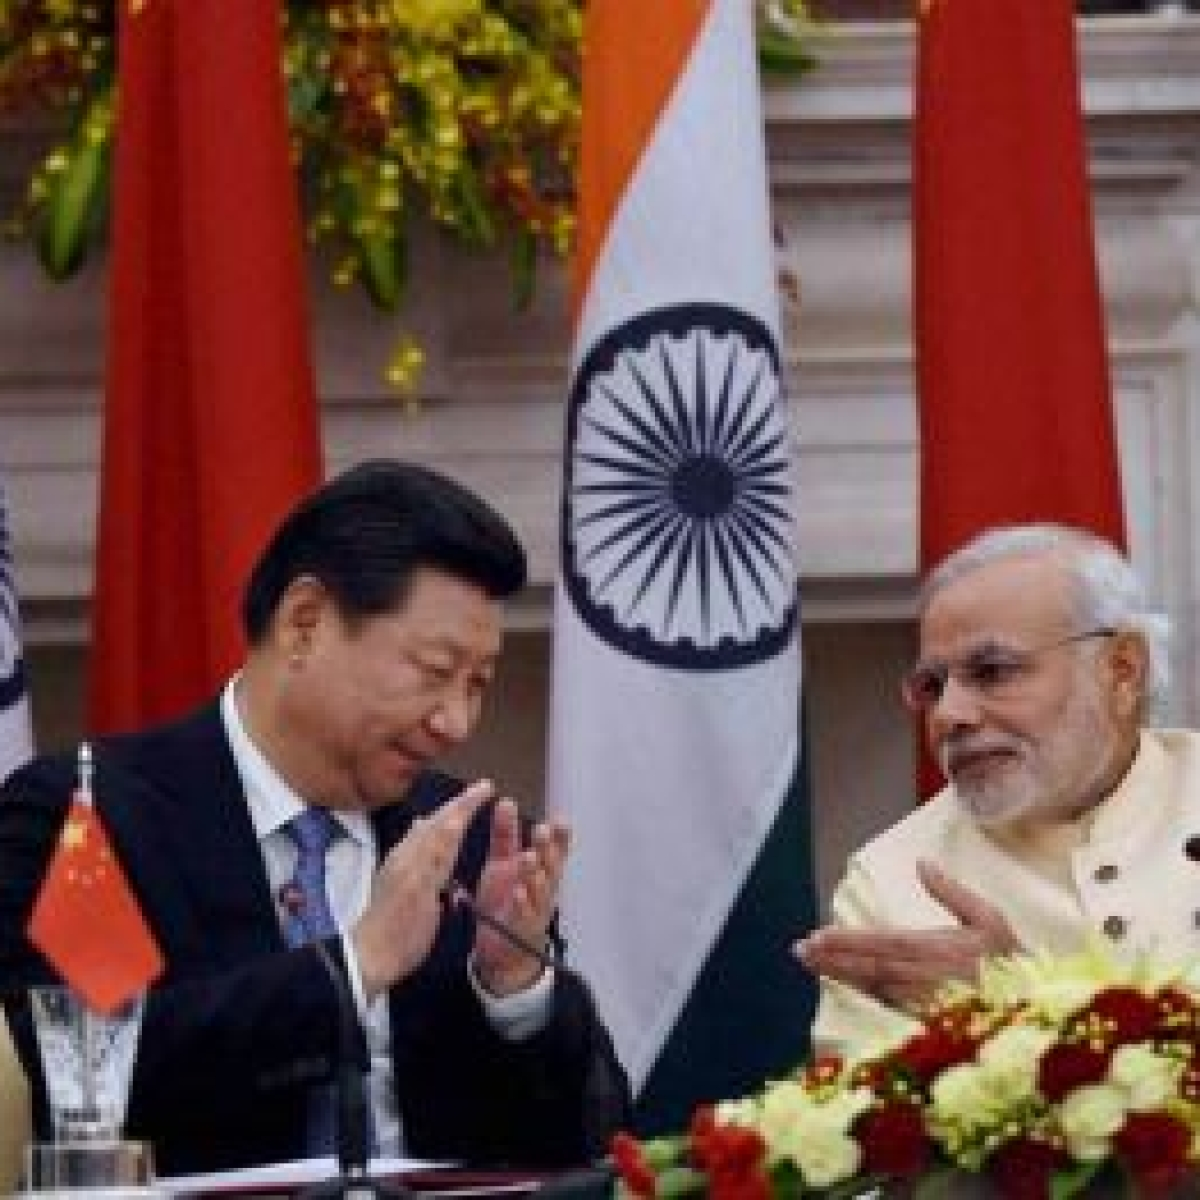 China which has blocked Twitter, Facebook, and YouTube whines about India blocking TikTok - read full statement